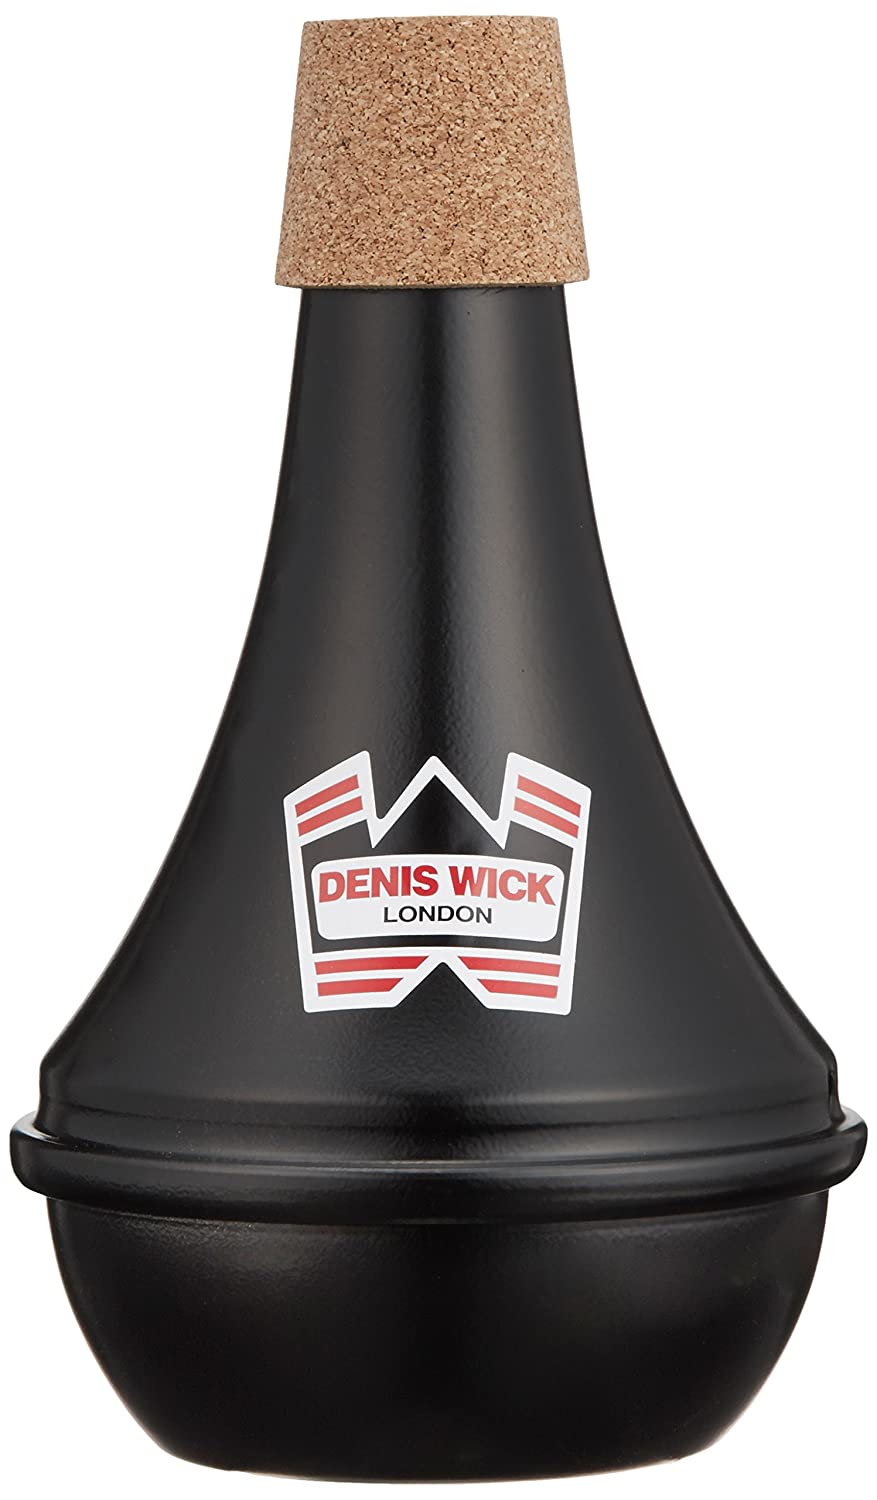 Dennis Wick practice mute: A great non-electronic practice mute. Around $35. Click to learn more or to buy one.